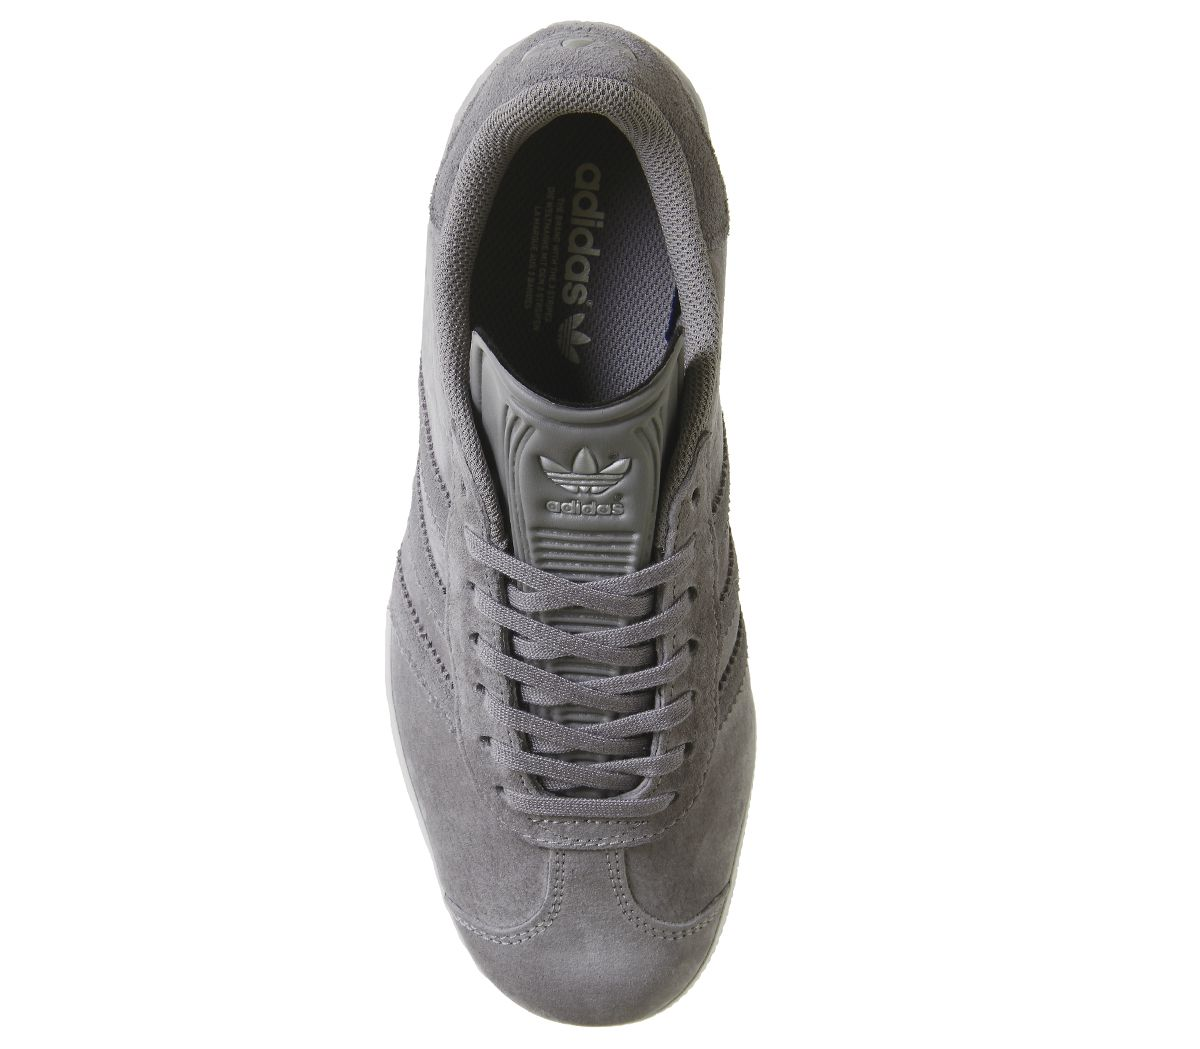 Details zu Mens Adidas Gazelle Trainers Solid Grey Four Silver Exclusive Trainers Shoes